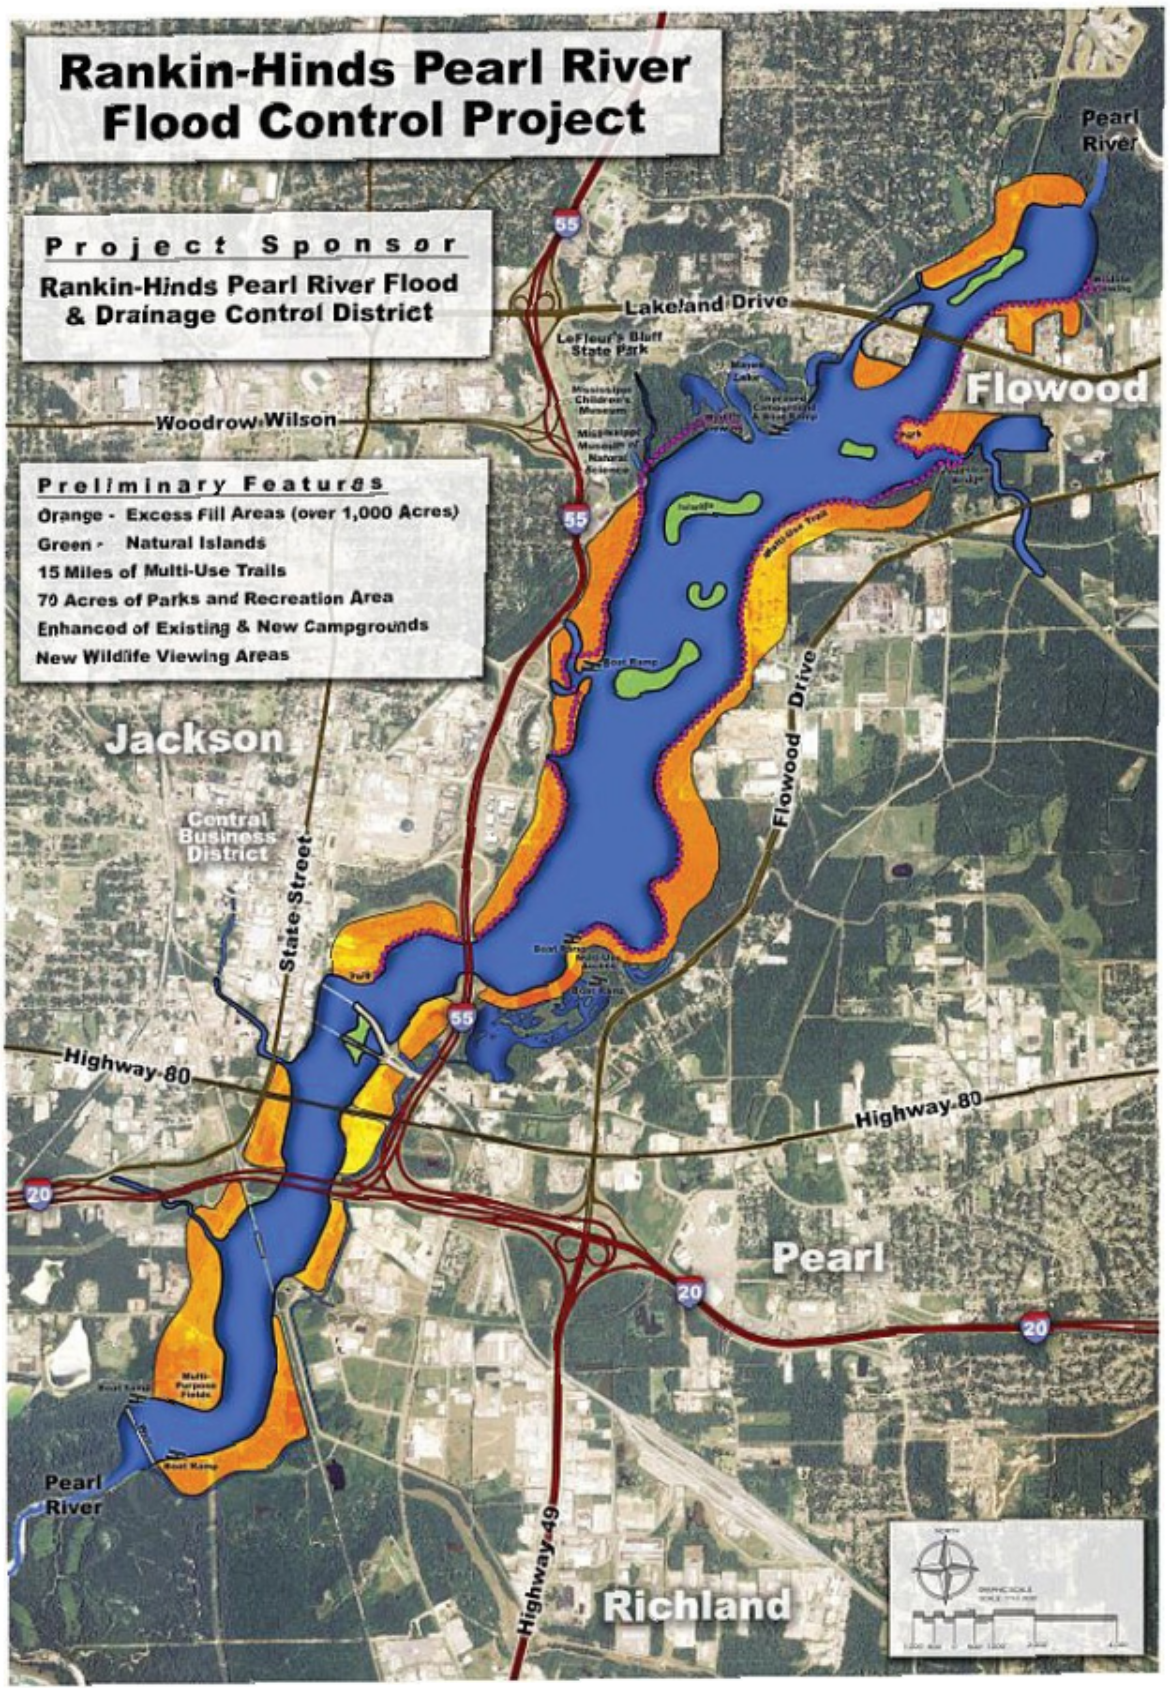 One Lake Plan Image provided by Pearl River Vision Foundation